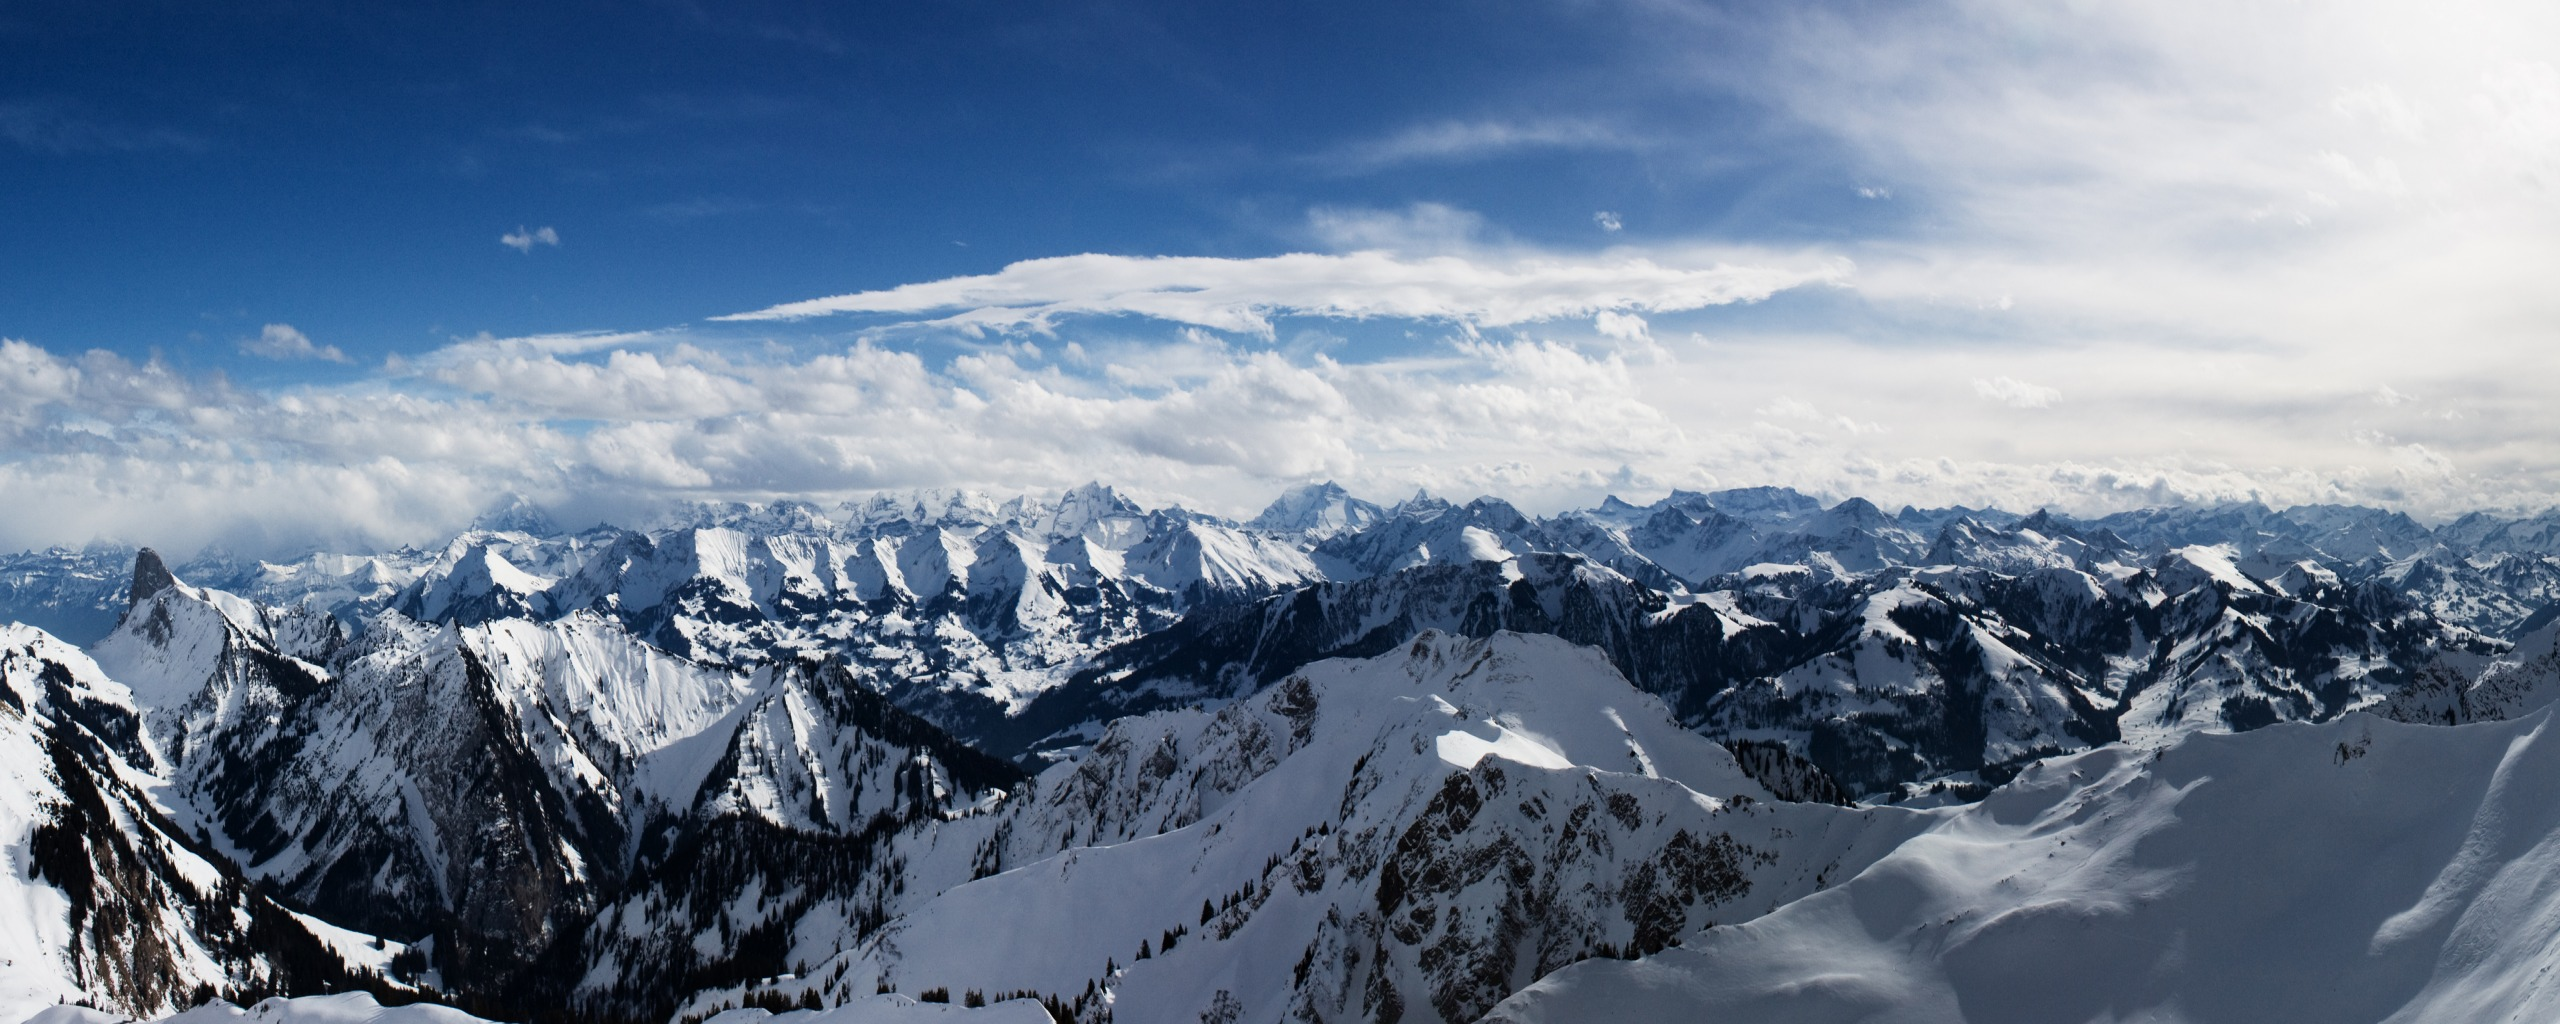 Alps Mountains Dual Monitor Wallpapers HD Wallpapers 2560x1024